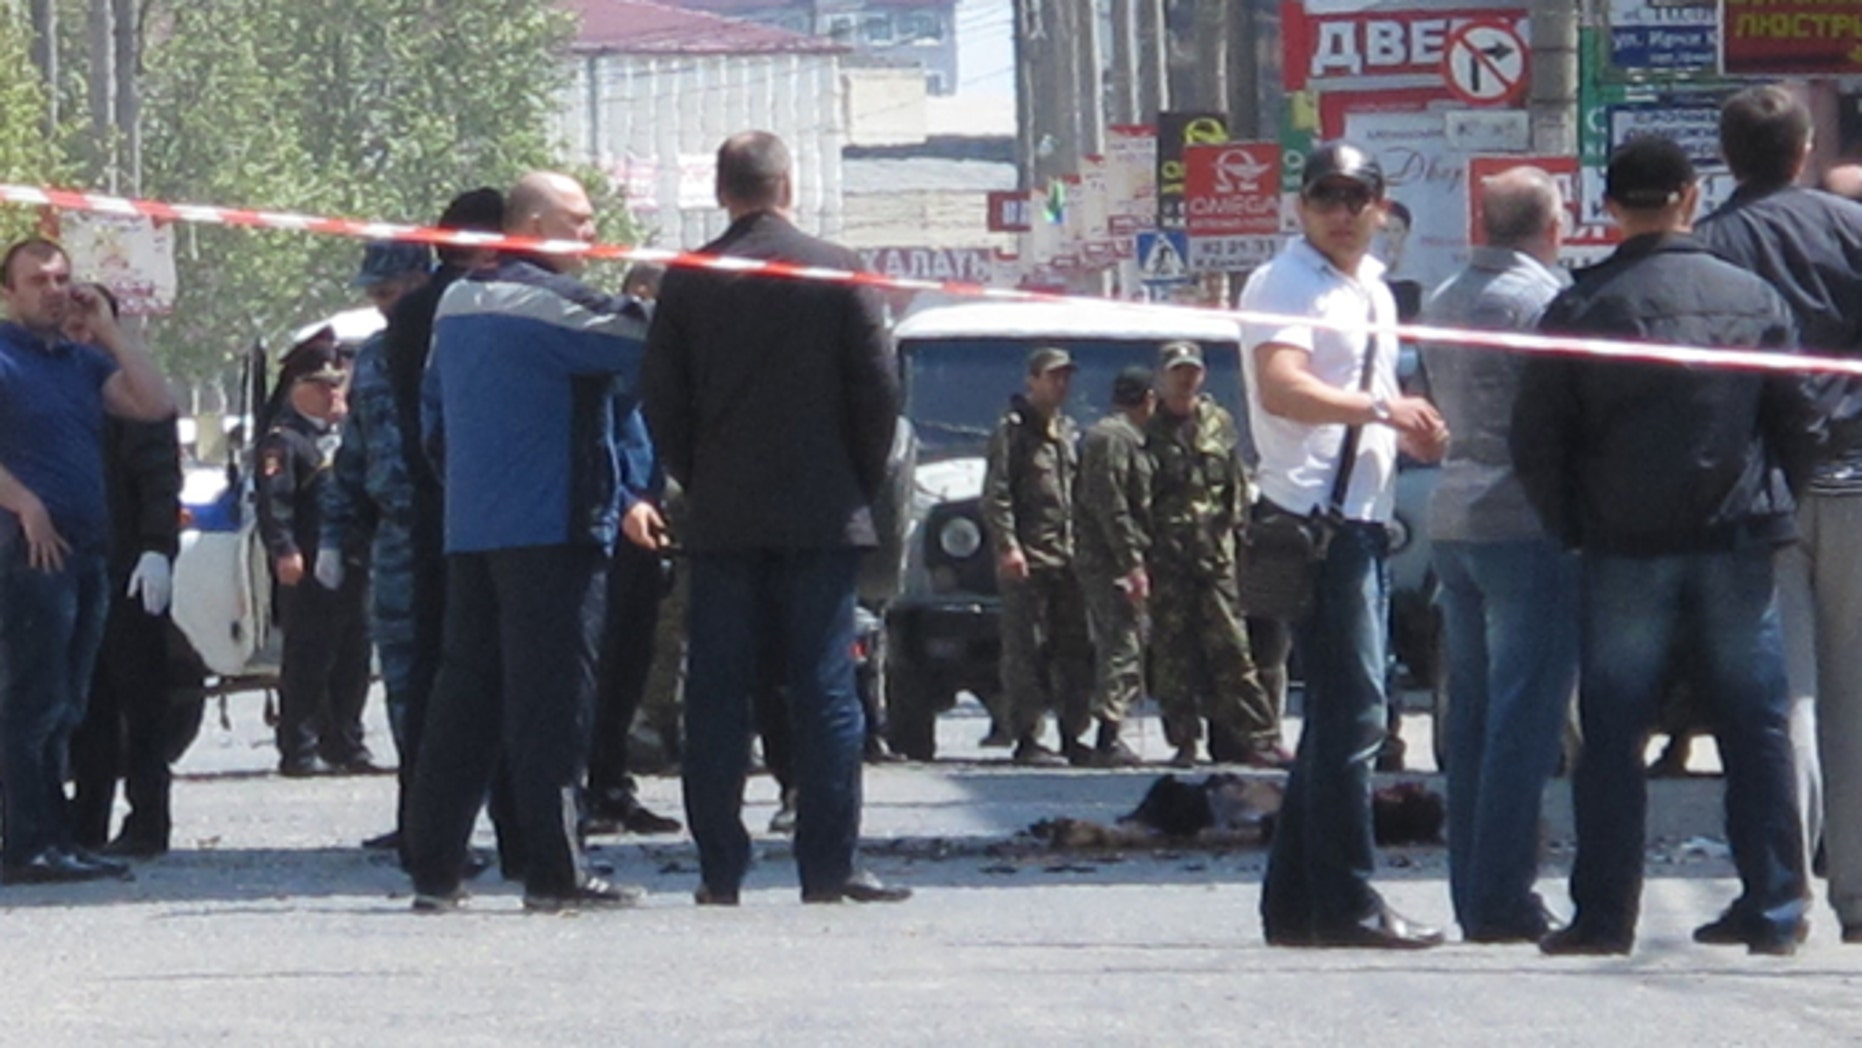 May 1, 2013: Police and forensic experts examine the site of an explosion in downtown Makhachkala, Dagestan. Russian police say a bomb  exploded in a busy shopping area in the capital of the restive republic of Dagestan, killing at least two people. Dagestan is plagued by Islamic insurgents who frequently mount small attacks on police.